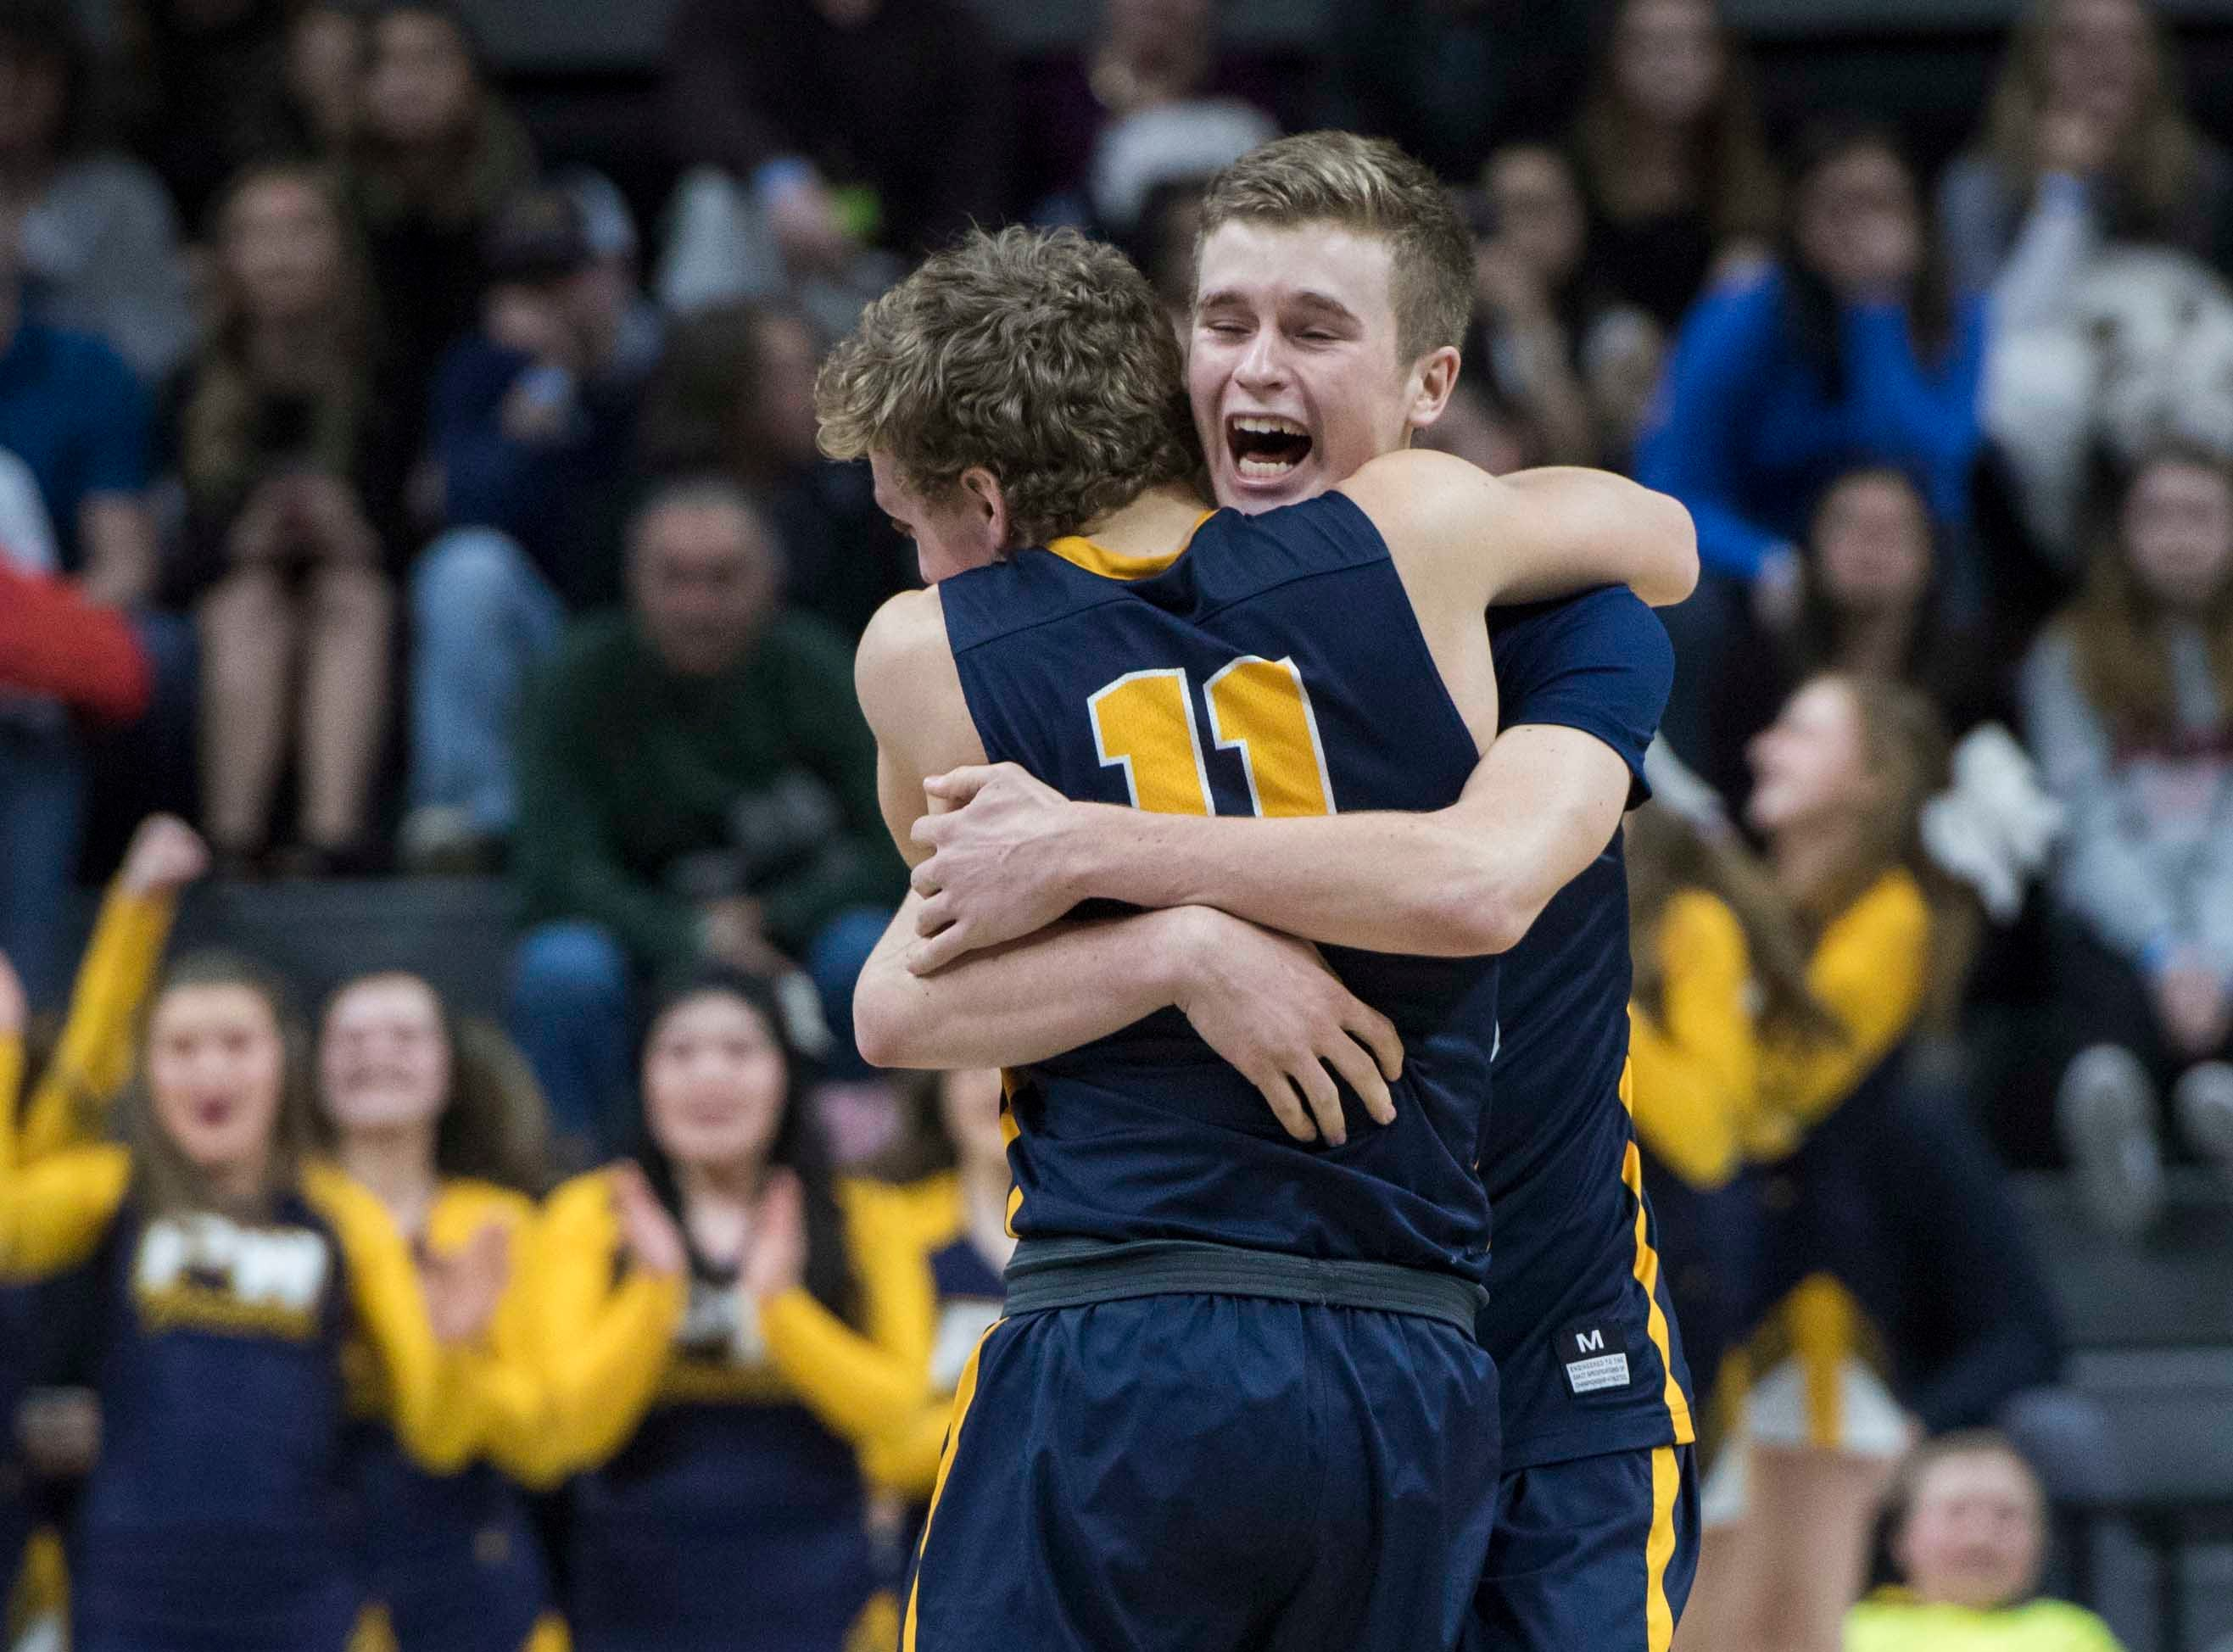 Pewamo-Westphalia's Collin Trierweiler embraces Pewamo-Westphalia's Hunter Hengesbach in the second half. *** Pewamo-Westphalia defeated Iron Mountain 53-52 in the MHSAA Div. 3 championship game at Breslin Center in East Lansing on Saturday, March 16, 2019. (Nic Antaya, Special to The Detroit News)